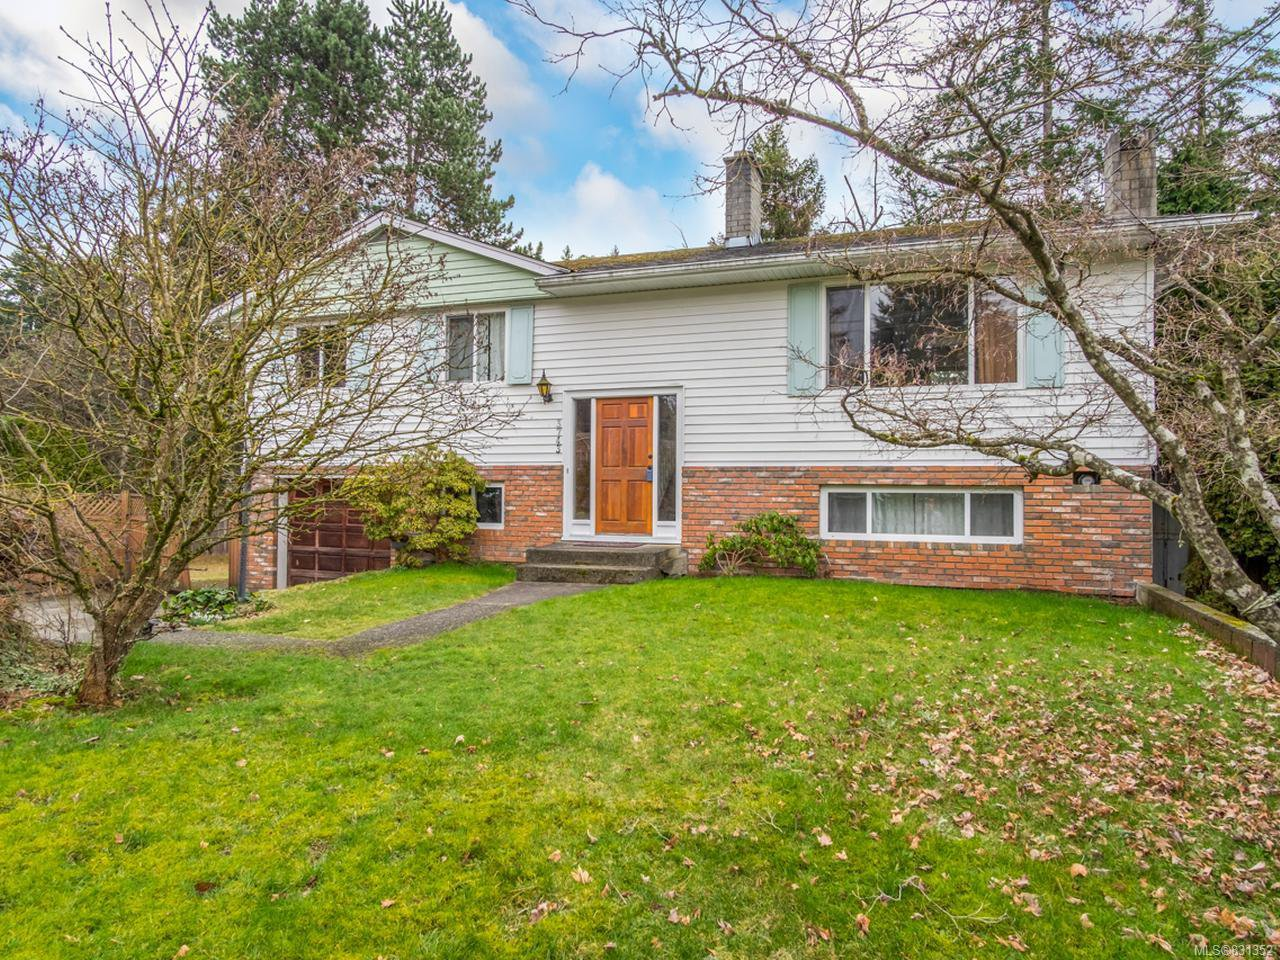 Main Photo: 3743 Uplands Dr in NANAIMO: Na Uplands House for sale (Nanaimo)  : MLS®# 831352